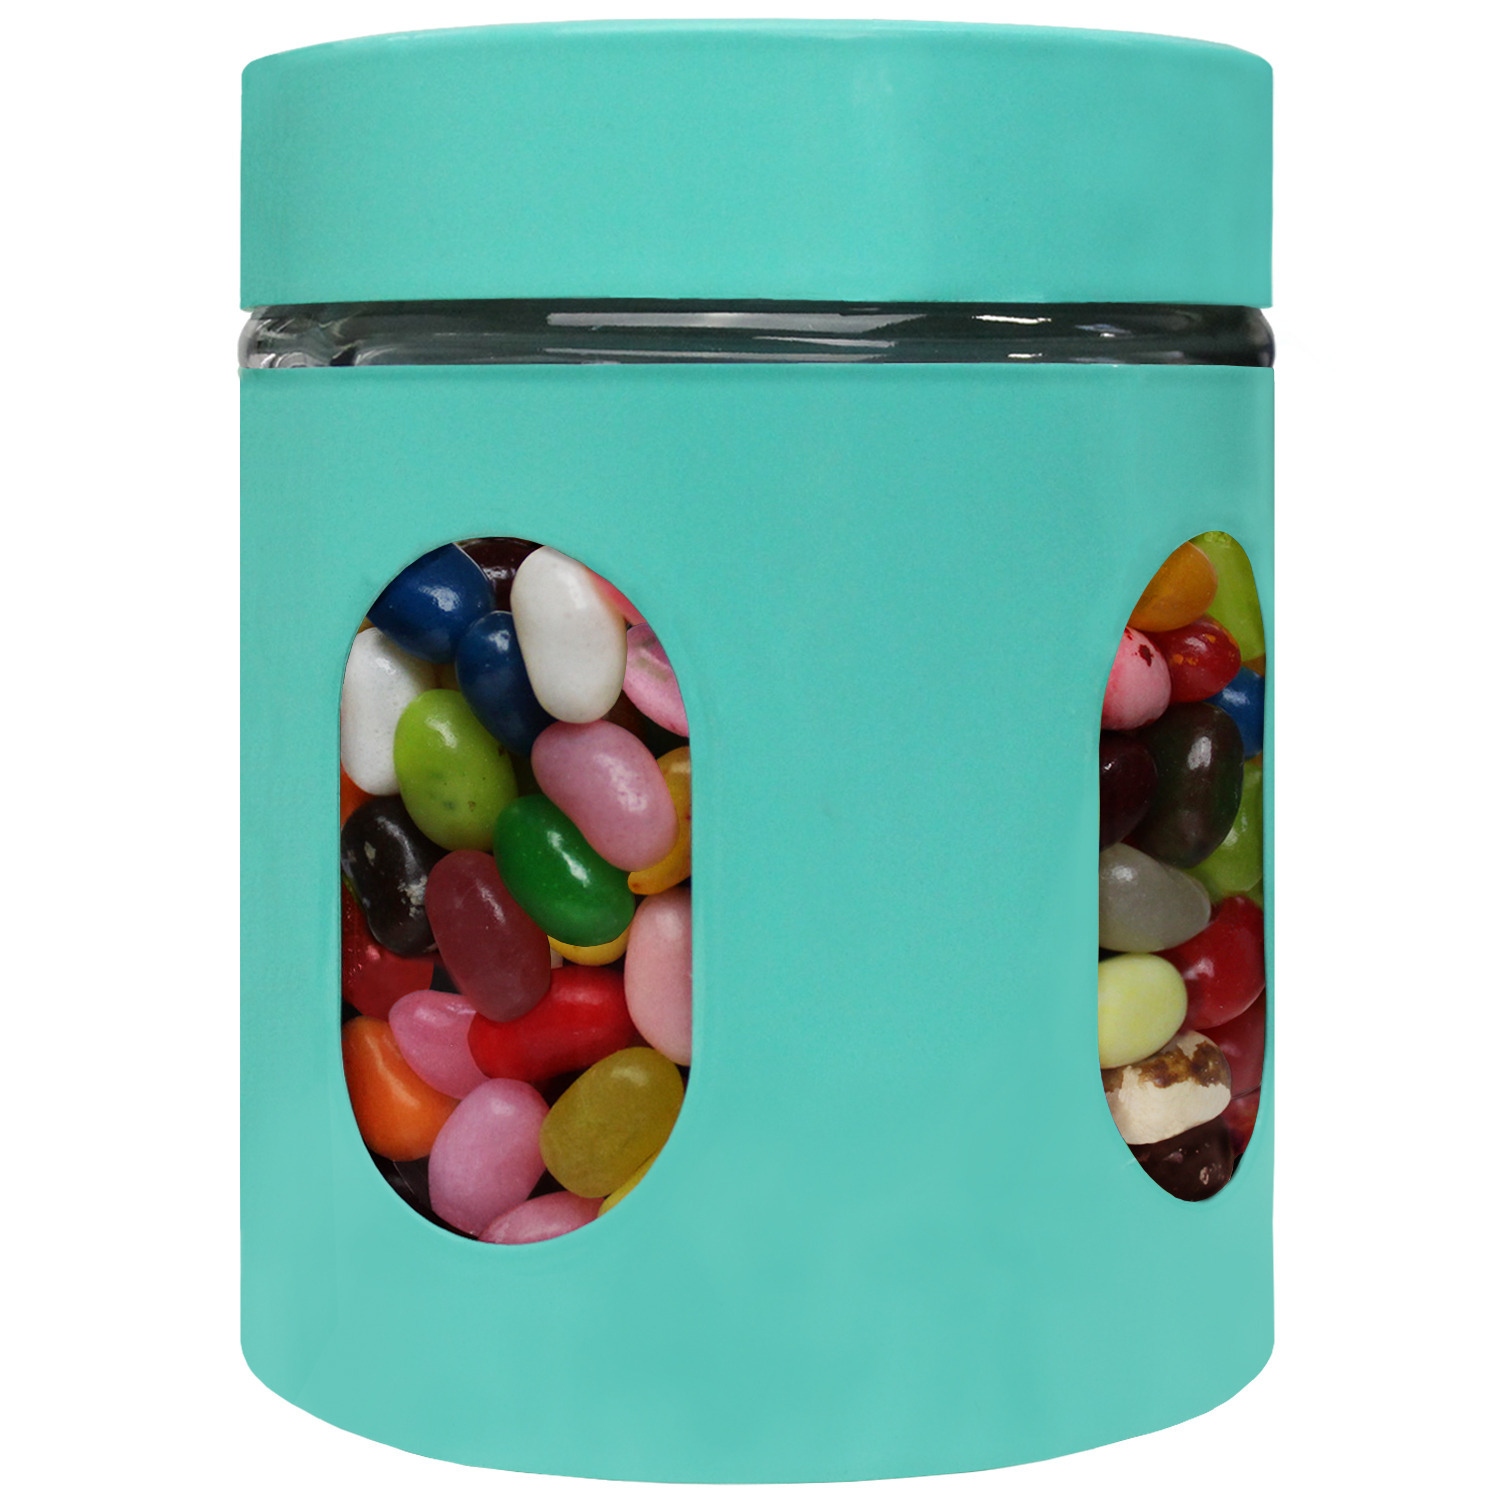 Blue Donuts 21oz Stainless Steel Canister with Window - Turquoise